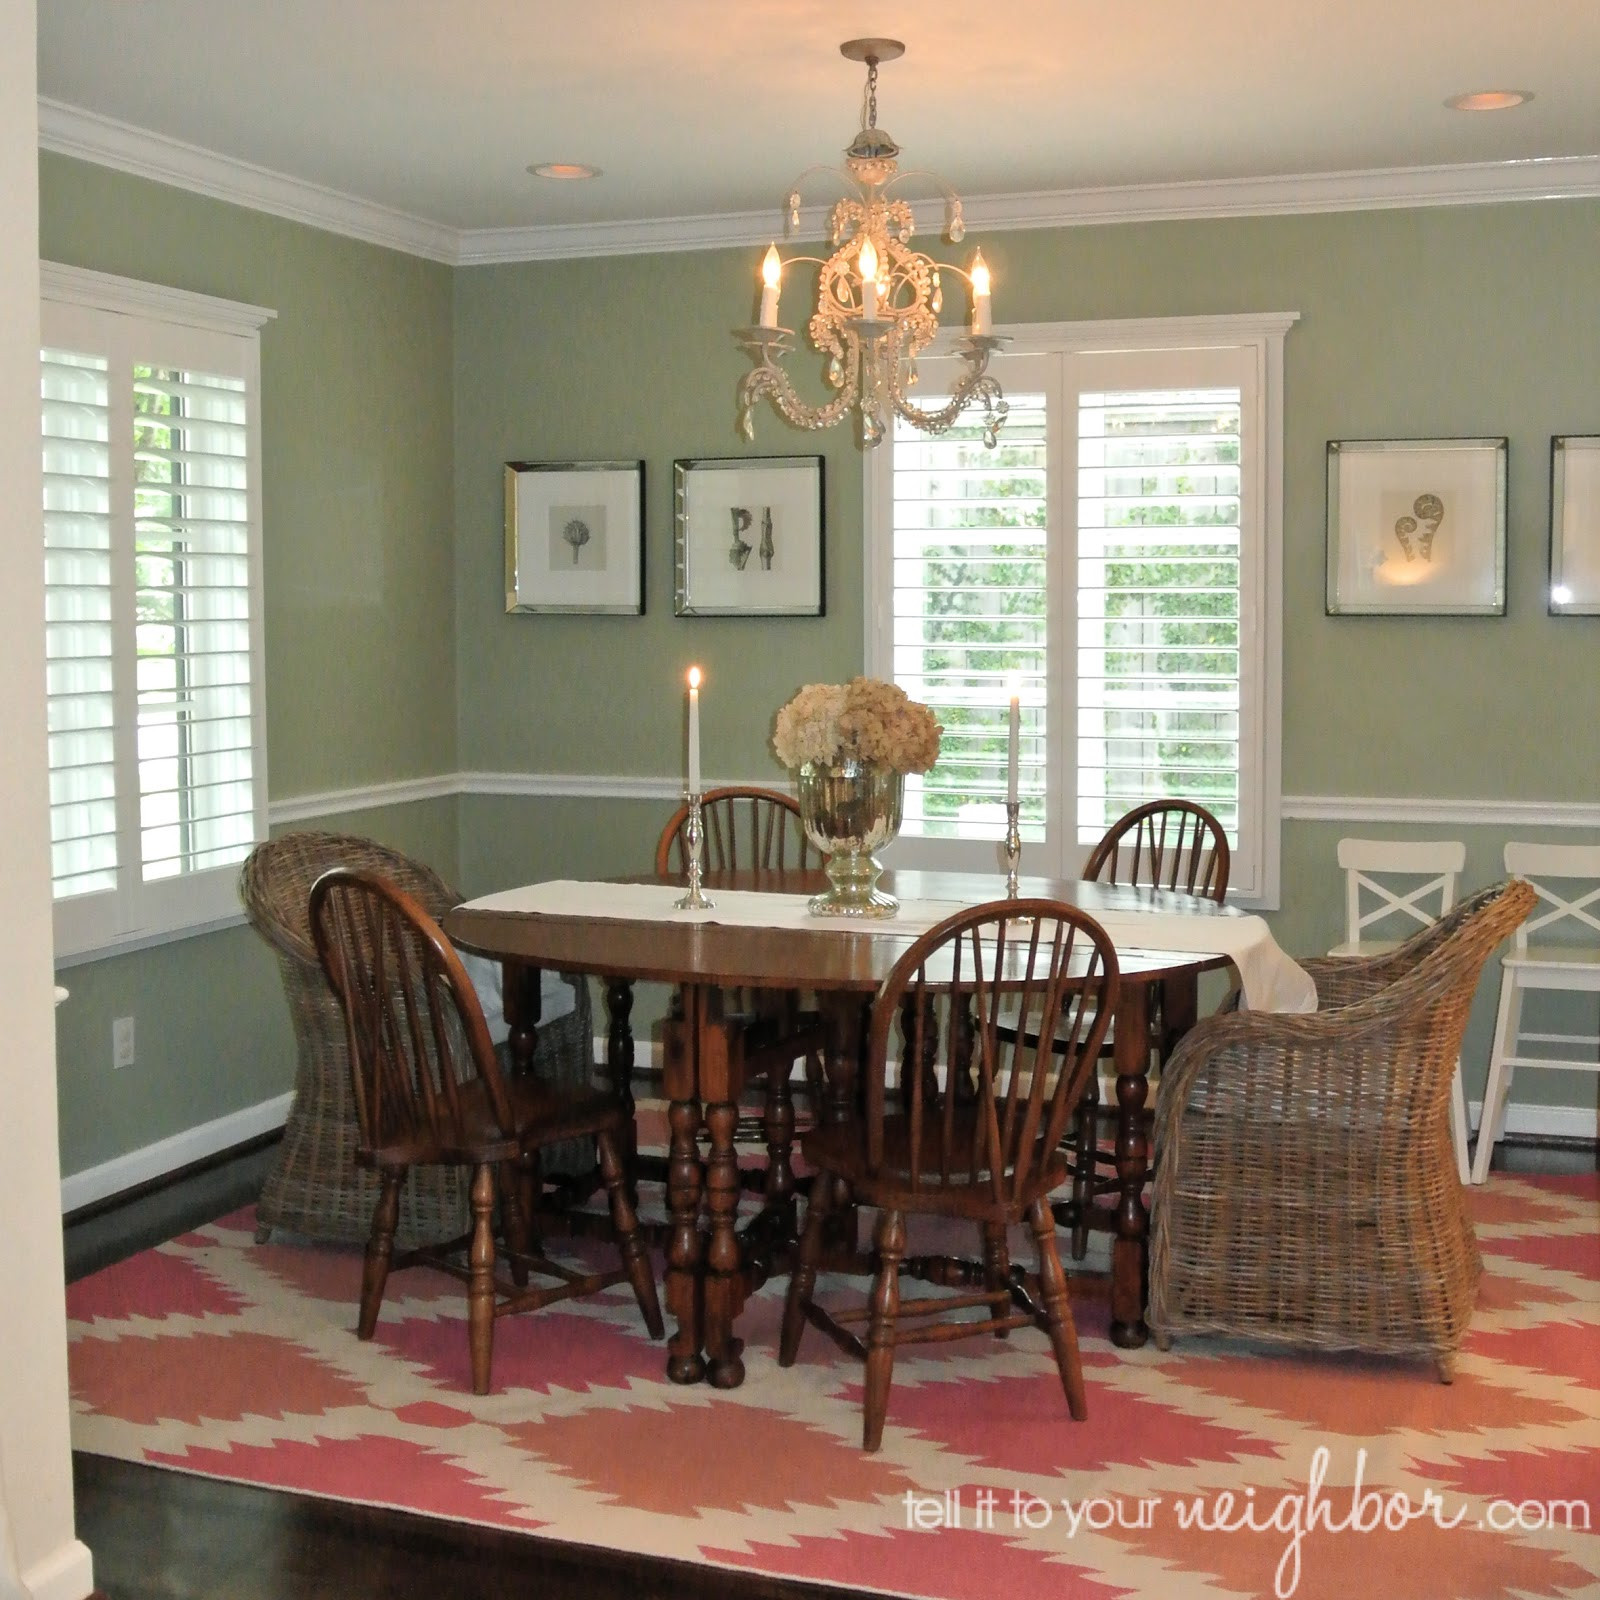 Best ideas about Rugs For Dining Room . Save or Pin tell it to your neighbor Dining Room Rug Now.